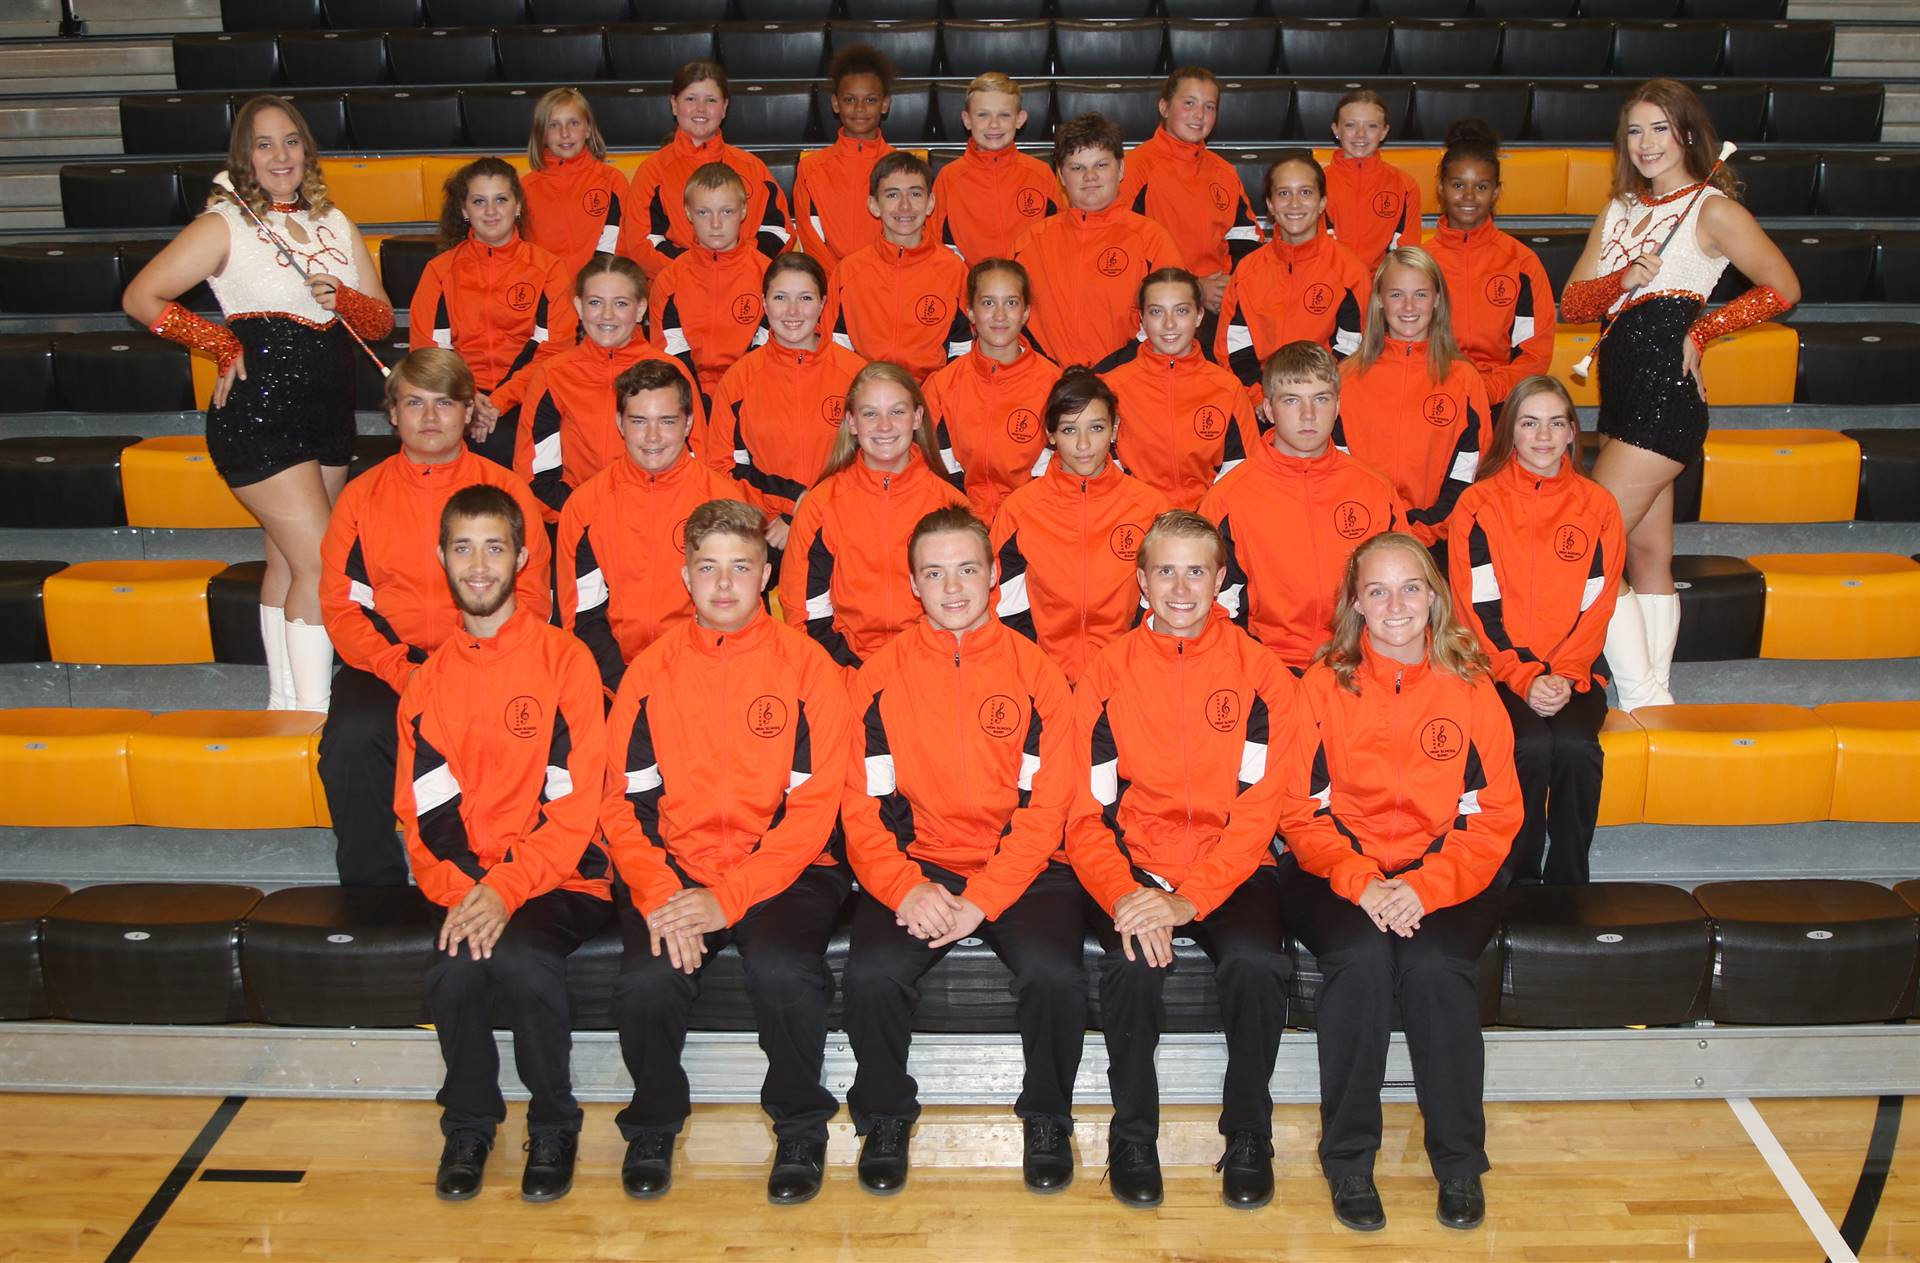 2019 CHS Marching Band